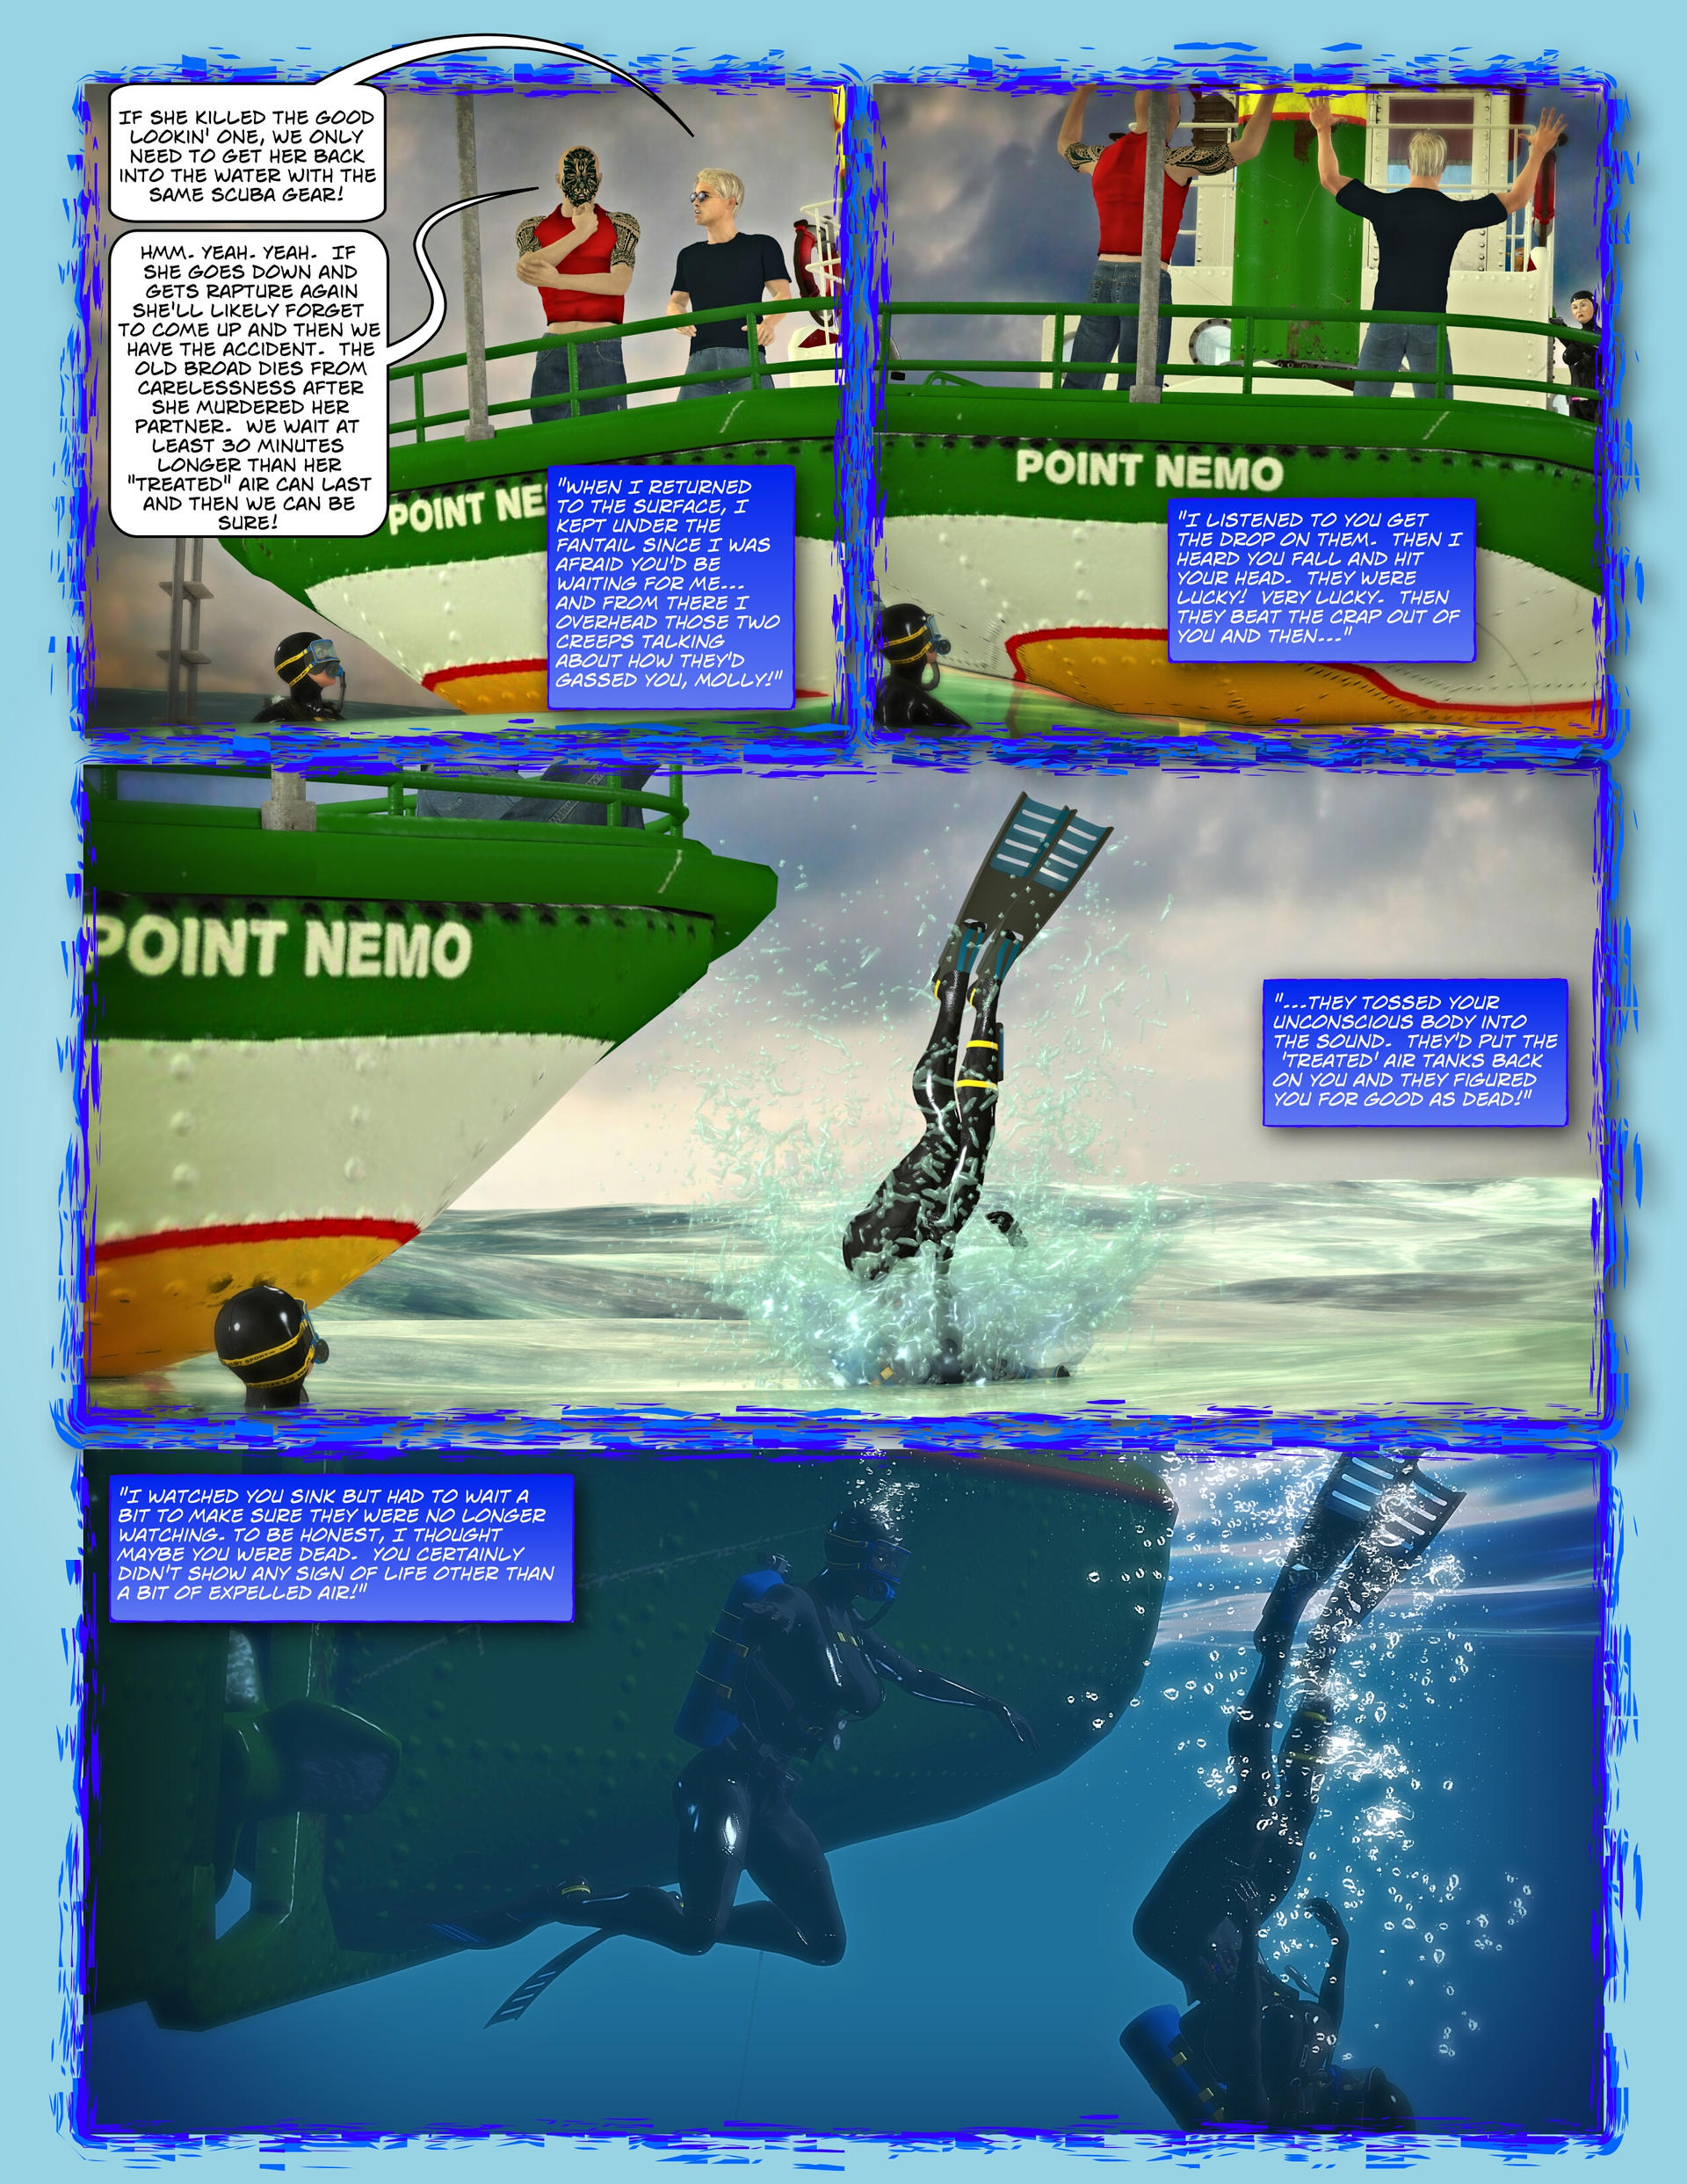 FY - Undercover - Page 4 by MollyFootman on DeviantArt